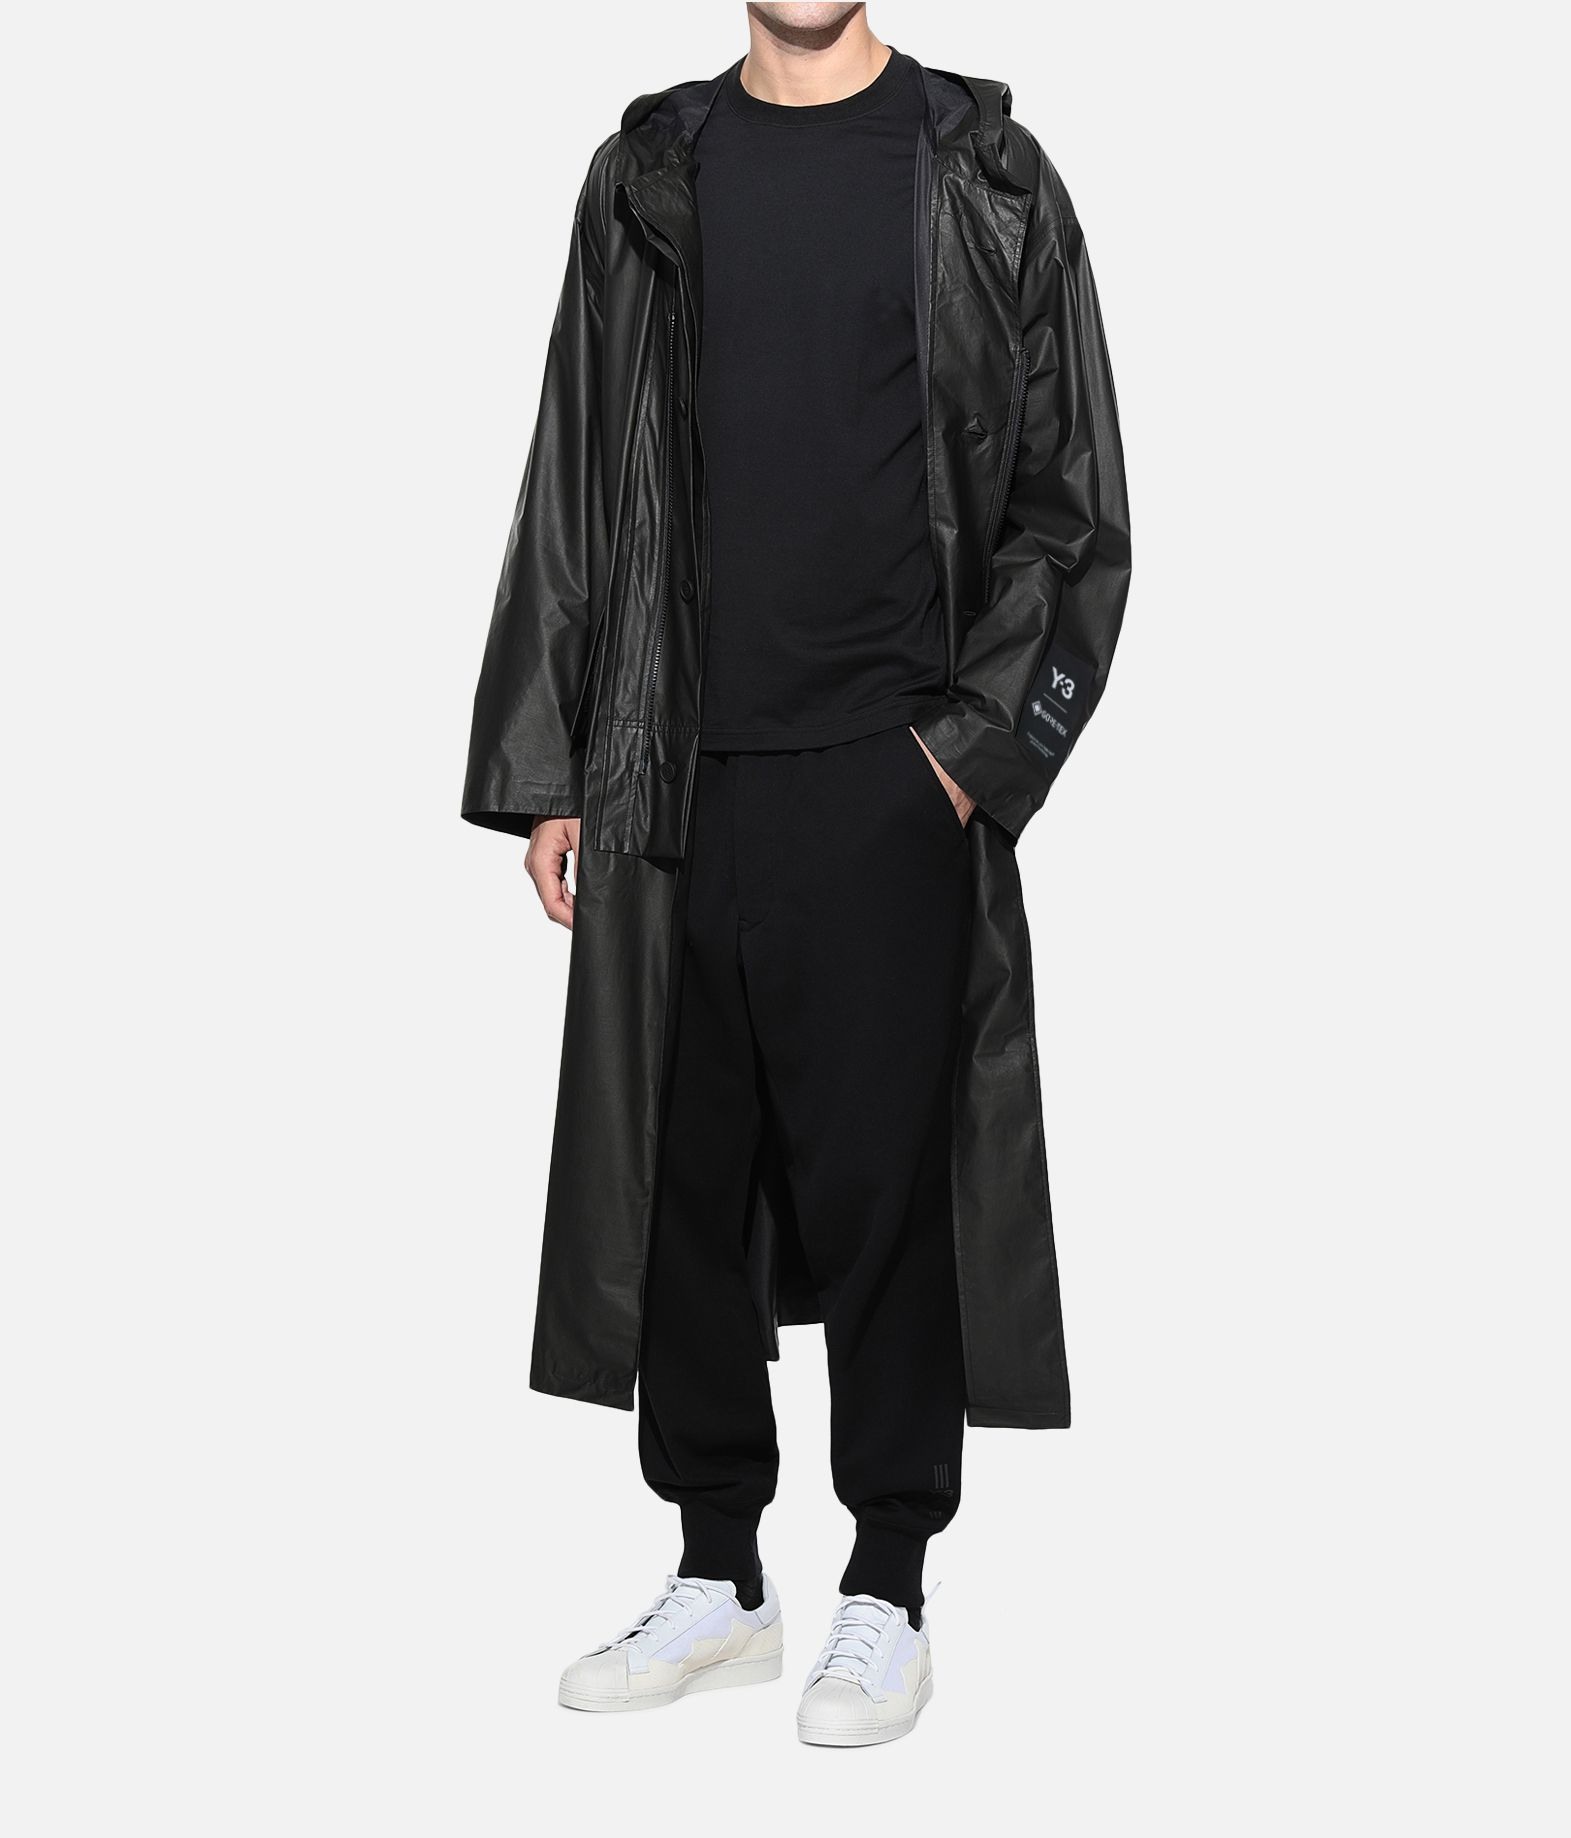 Y-3 Y-3 GORE-TEX Long Coat Raincoat Man a